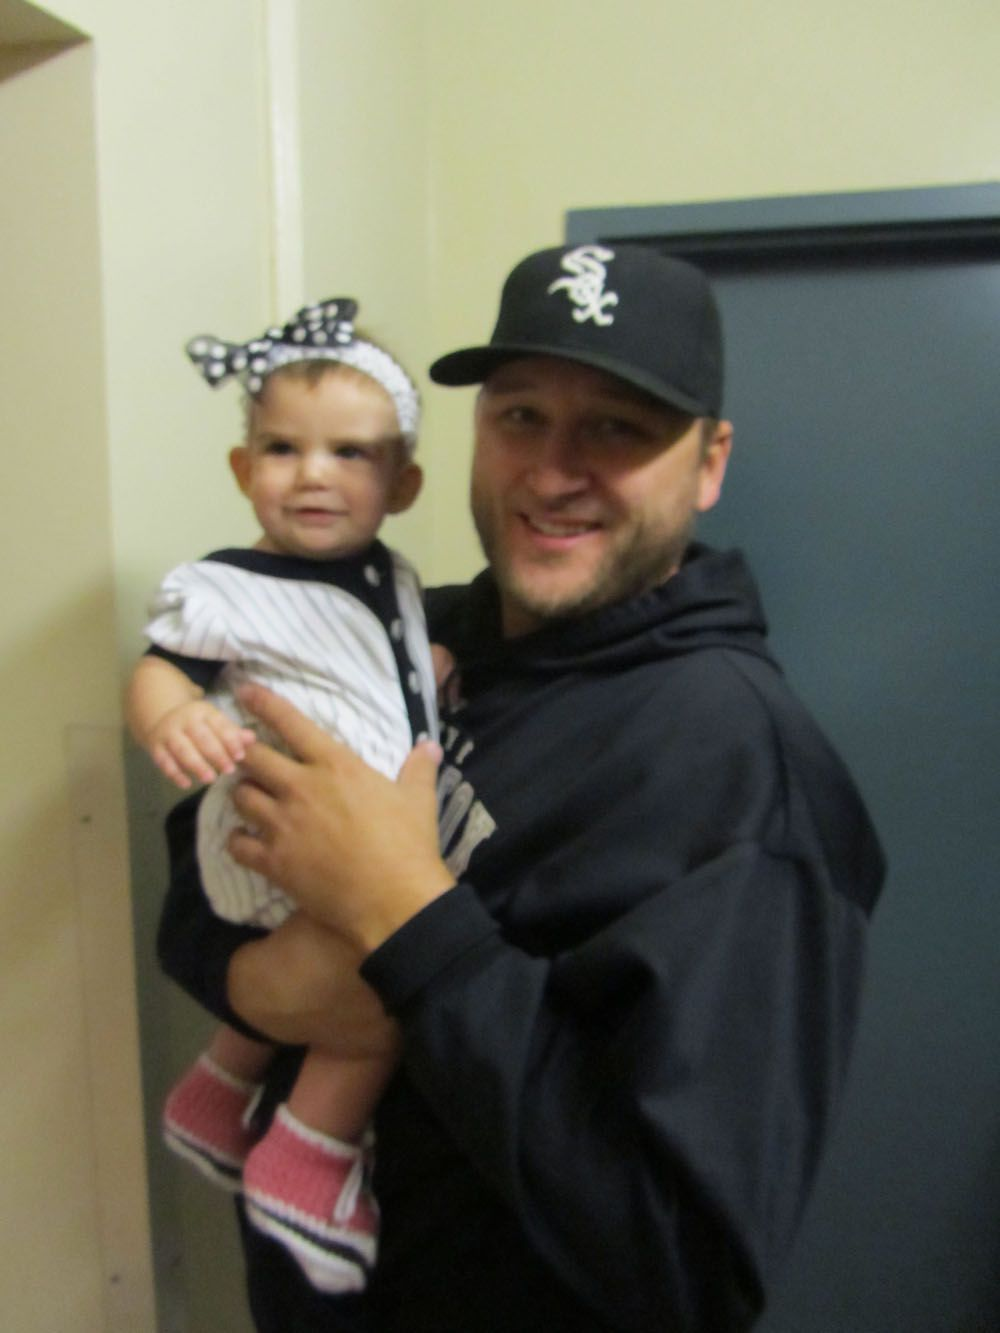 Thanks for taking our questions, Mark Buehrle.